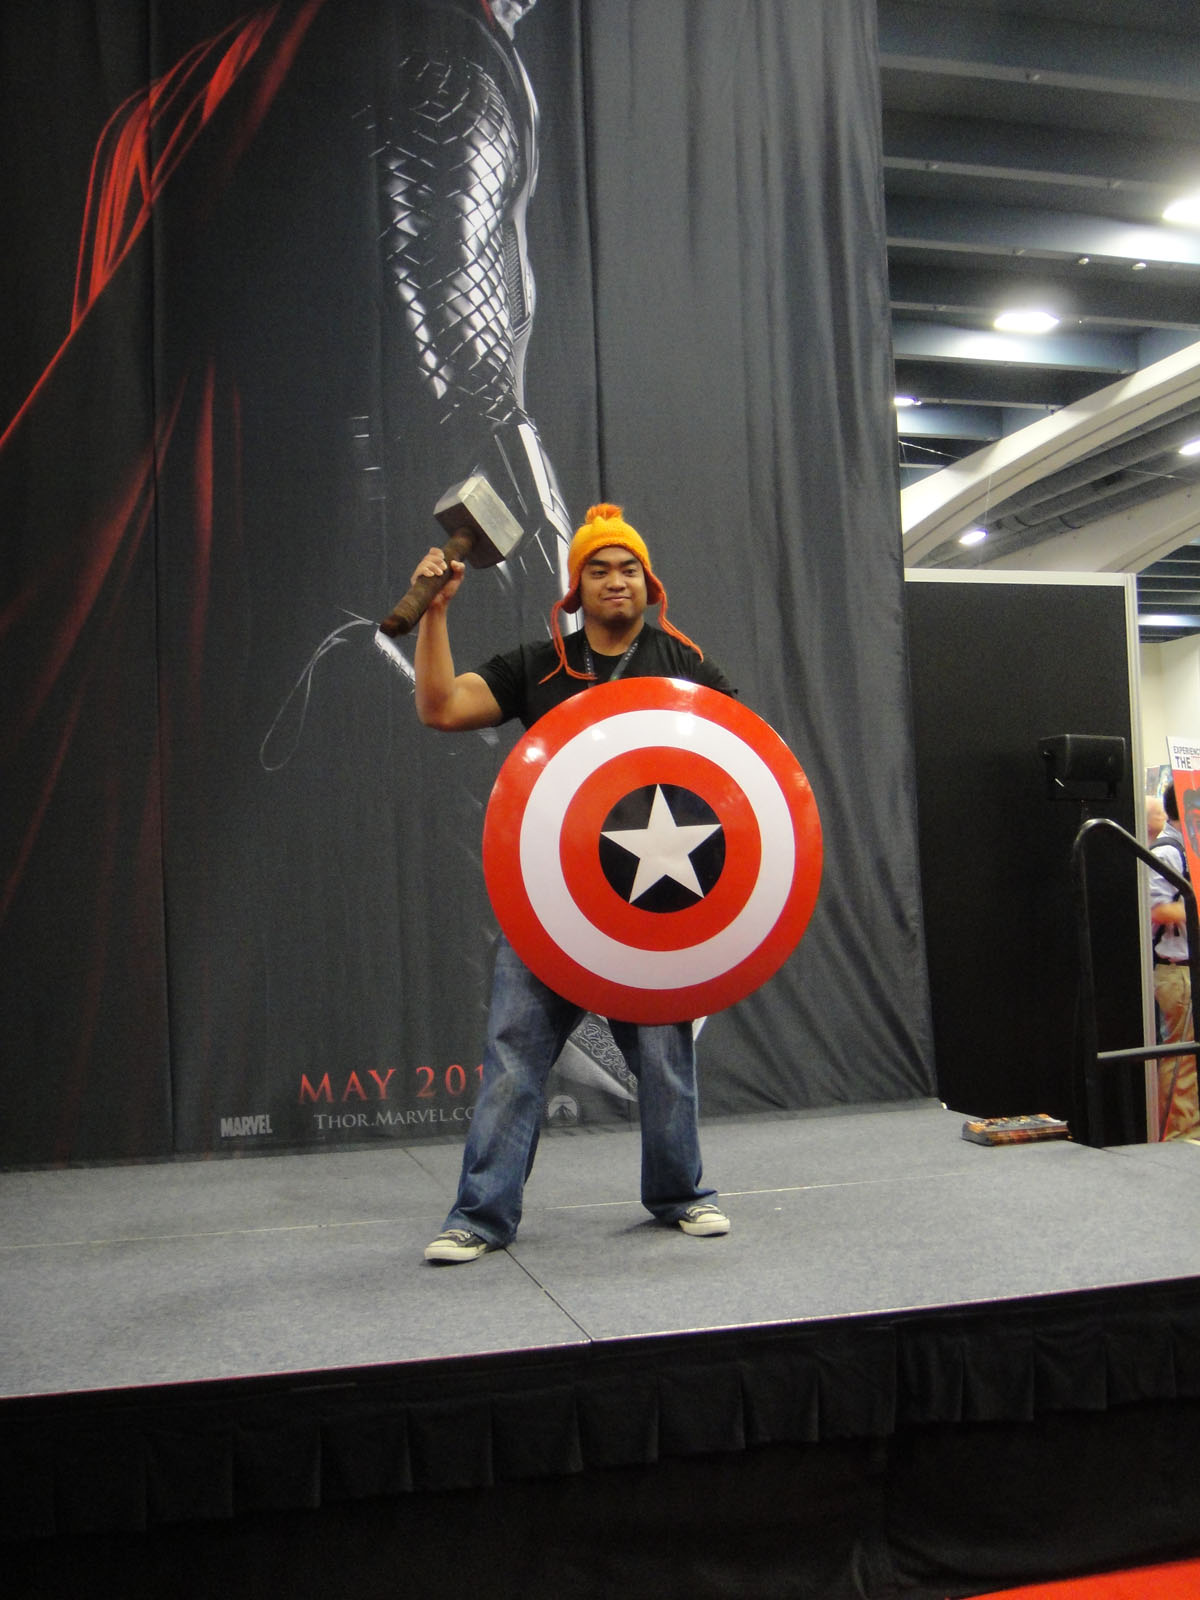 file wondercon 2011 a fan worthy of holding the hammer of thor and